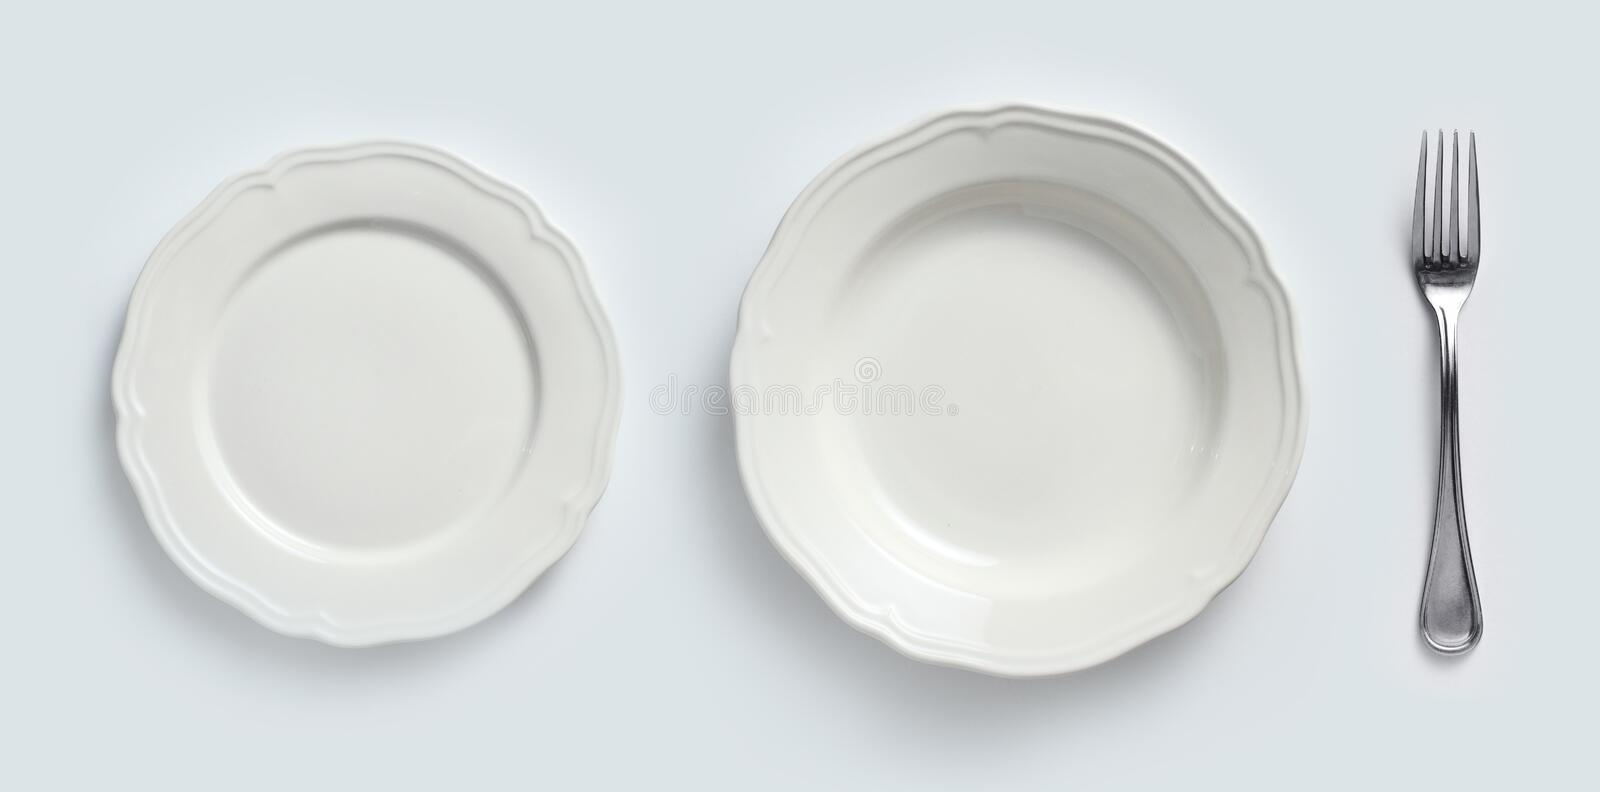 Ceramic plates & cutlery. White ceramic plates and cutlery stock photos